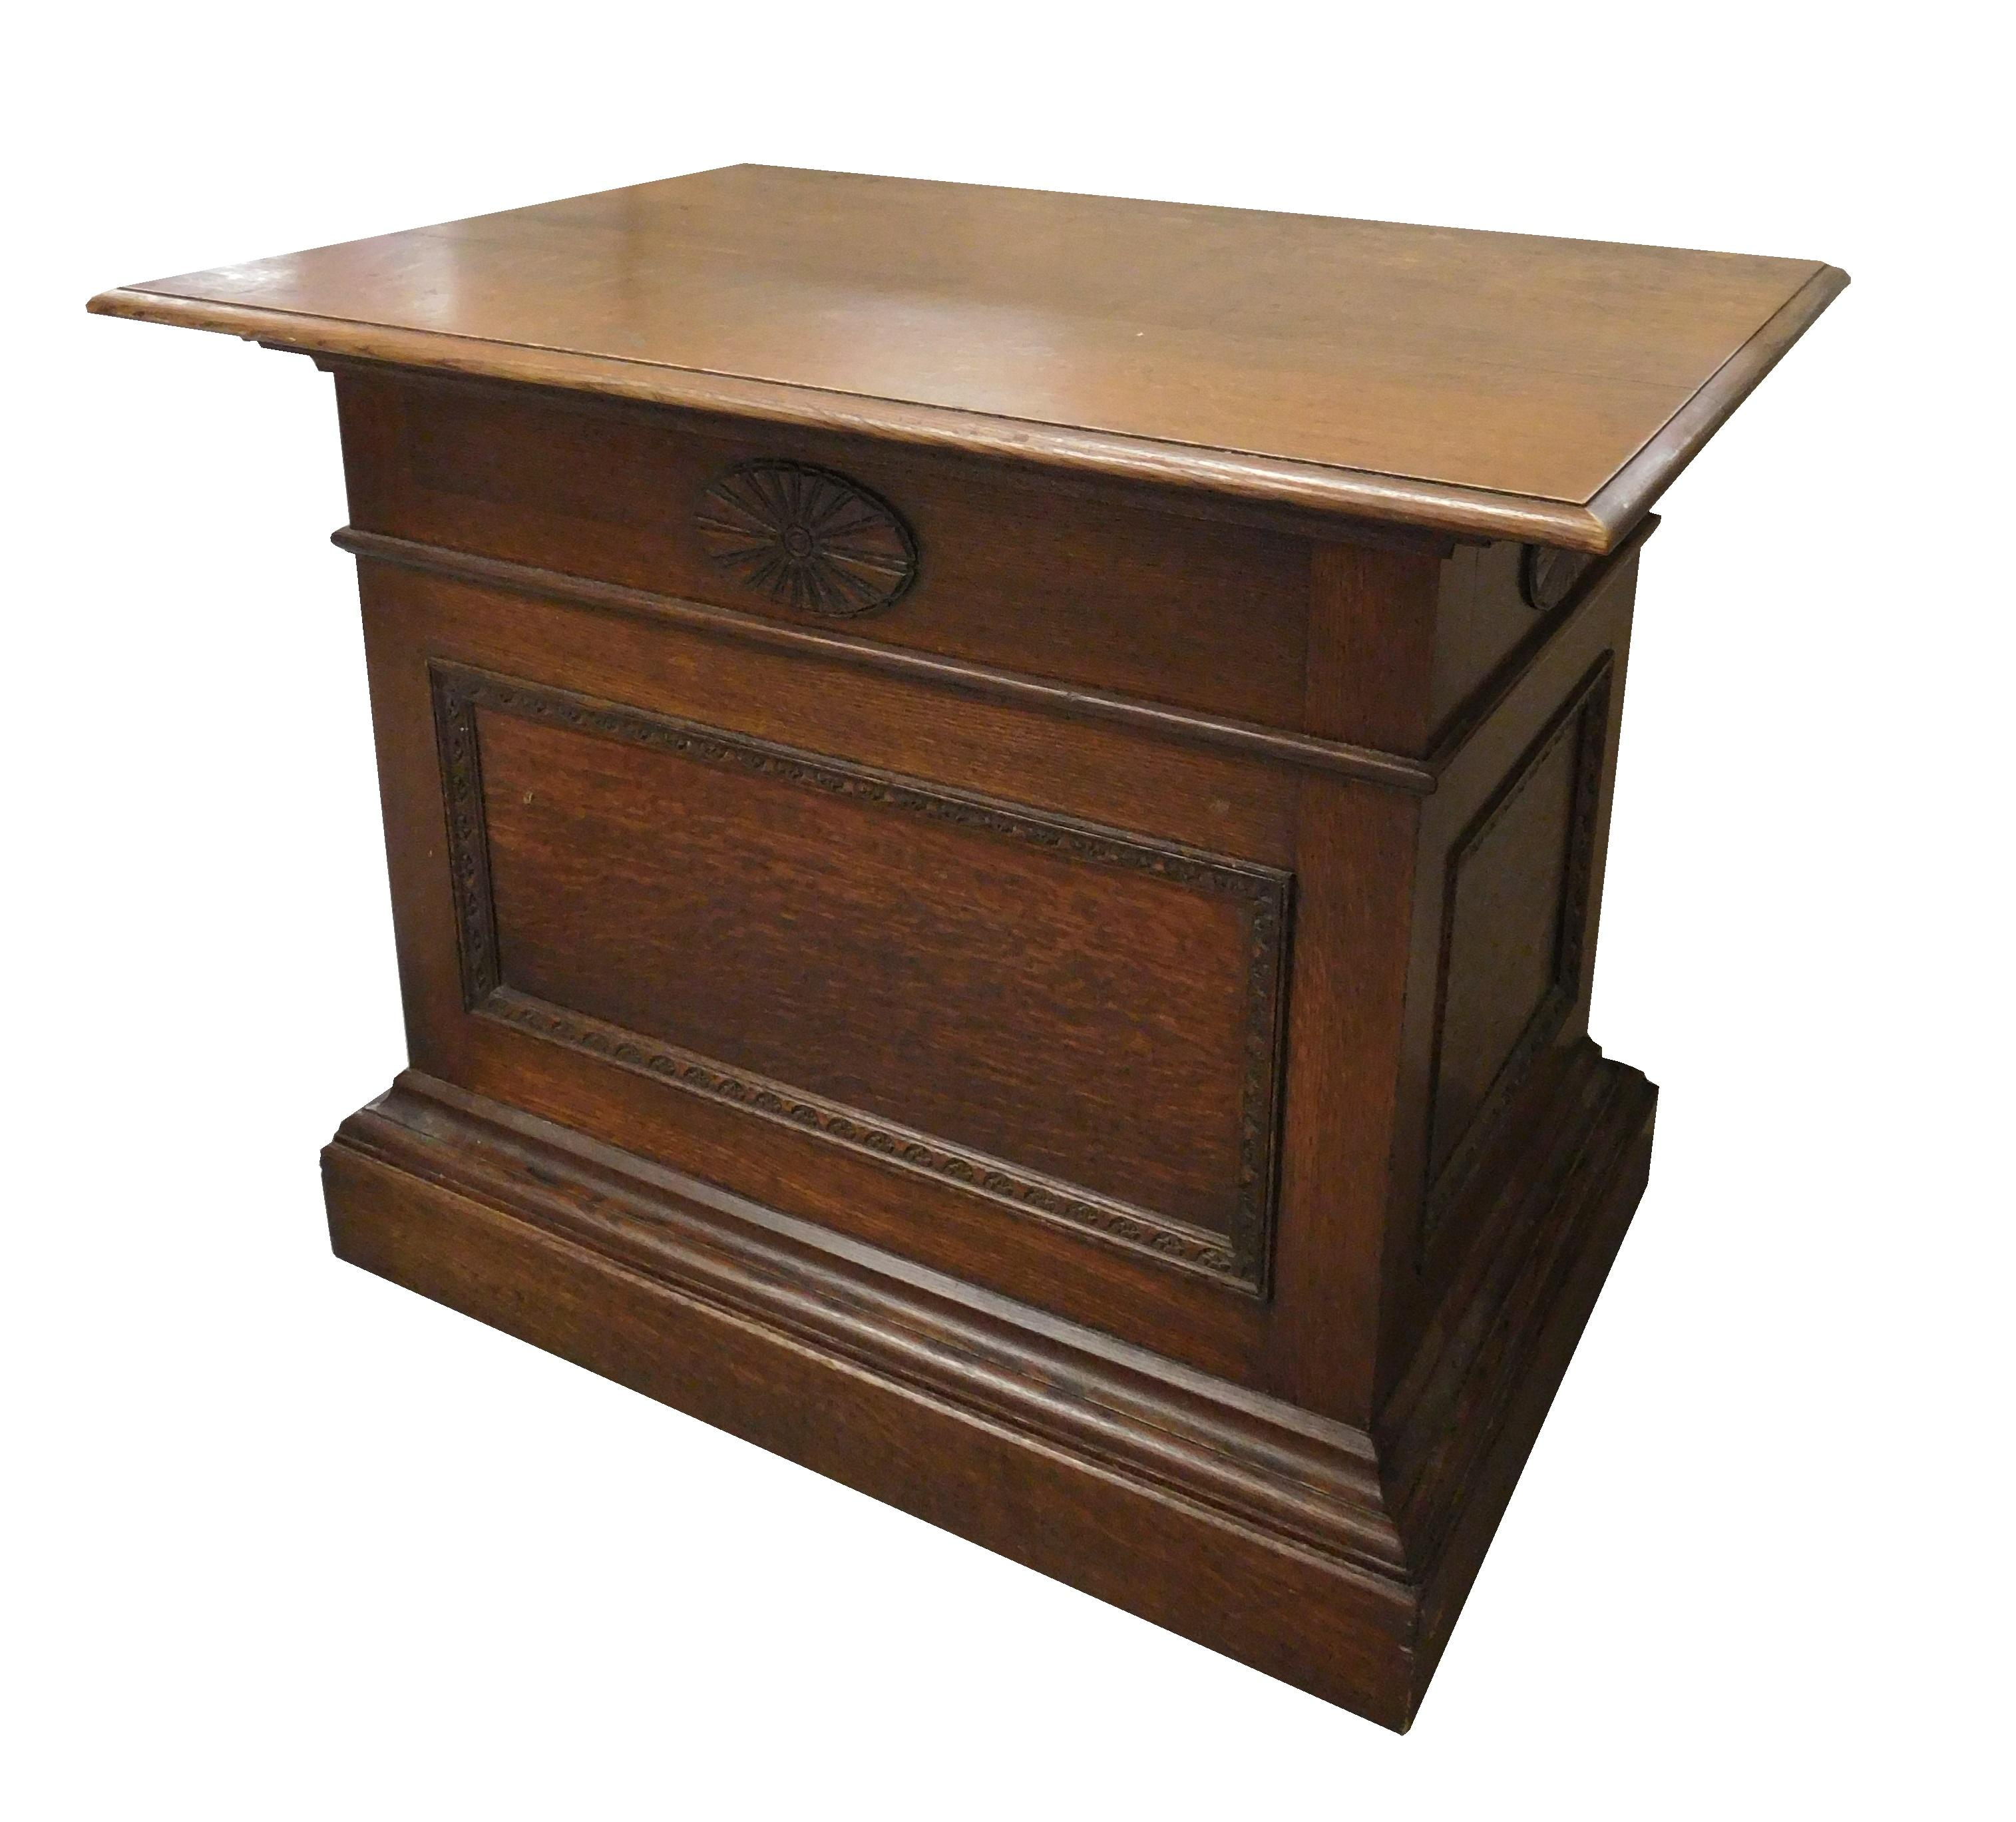 Oblong oak stand with paneled sides and stepped molding base, wear consistent with age and use, 34' h. x 30' w. x 42' d.